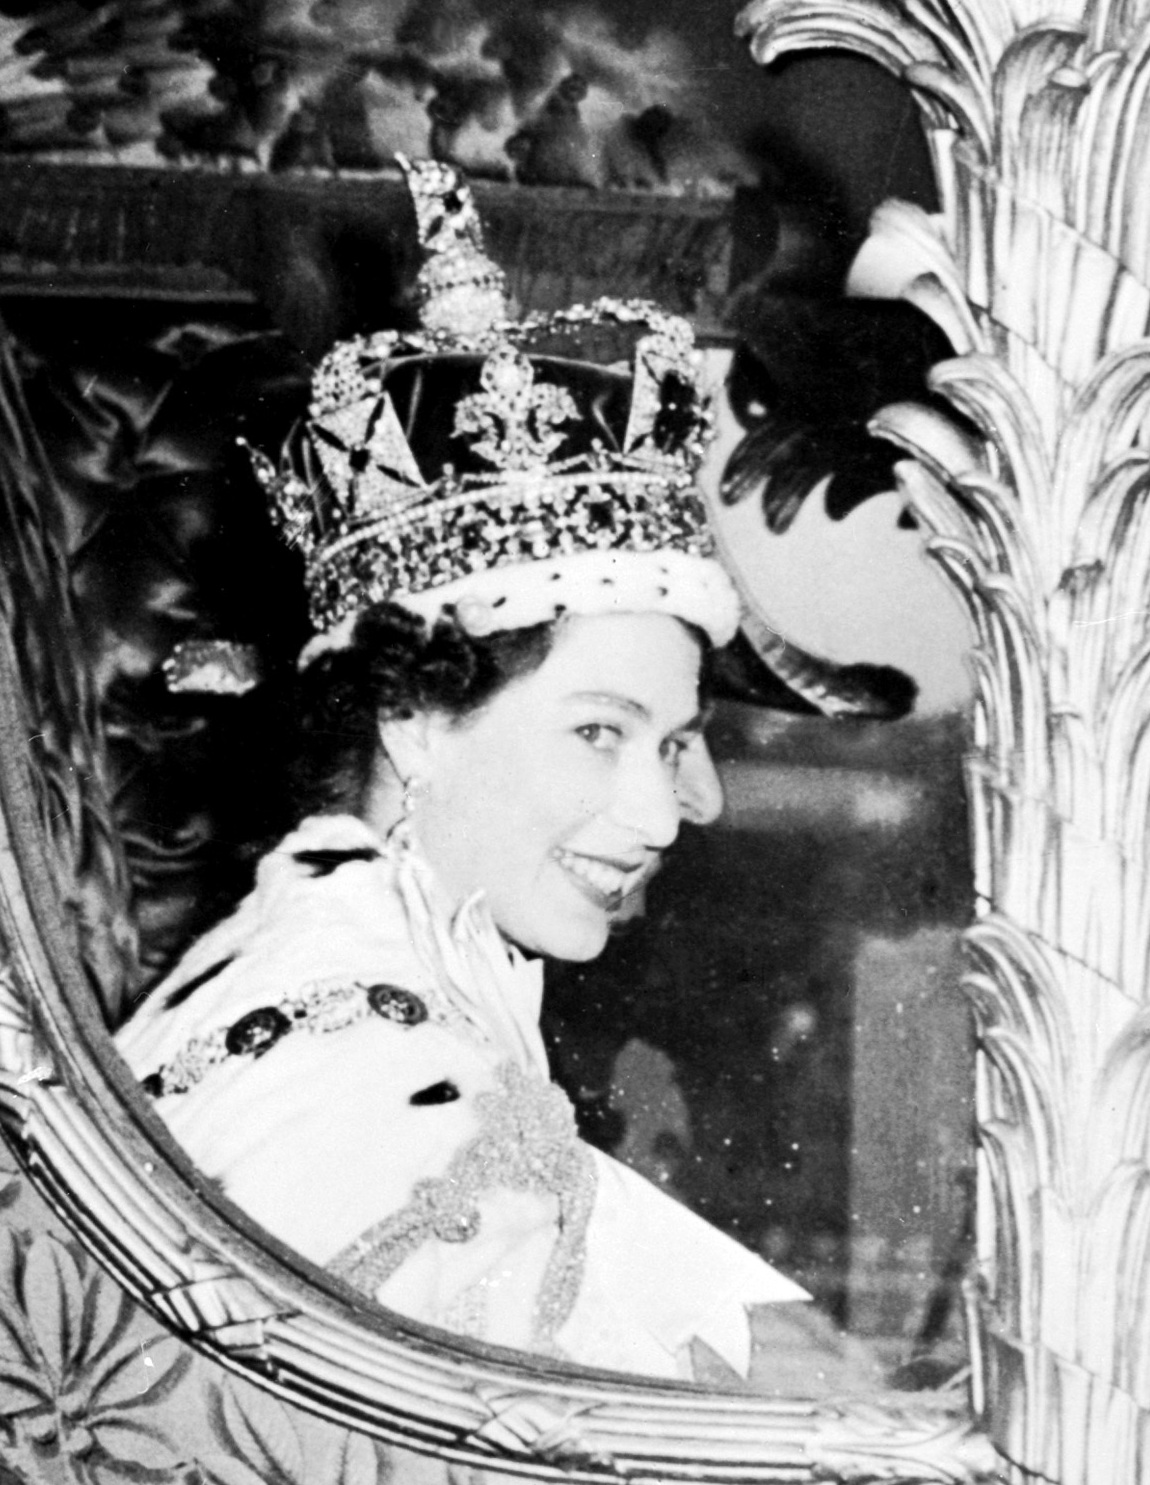 Queen Elizabeth II is seen after being crowned at Westminster Abbey in London on June 2, 1953. Elizabeth was proclaimed queen in 1952 at age 25.